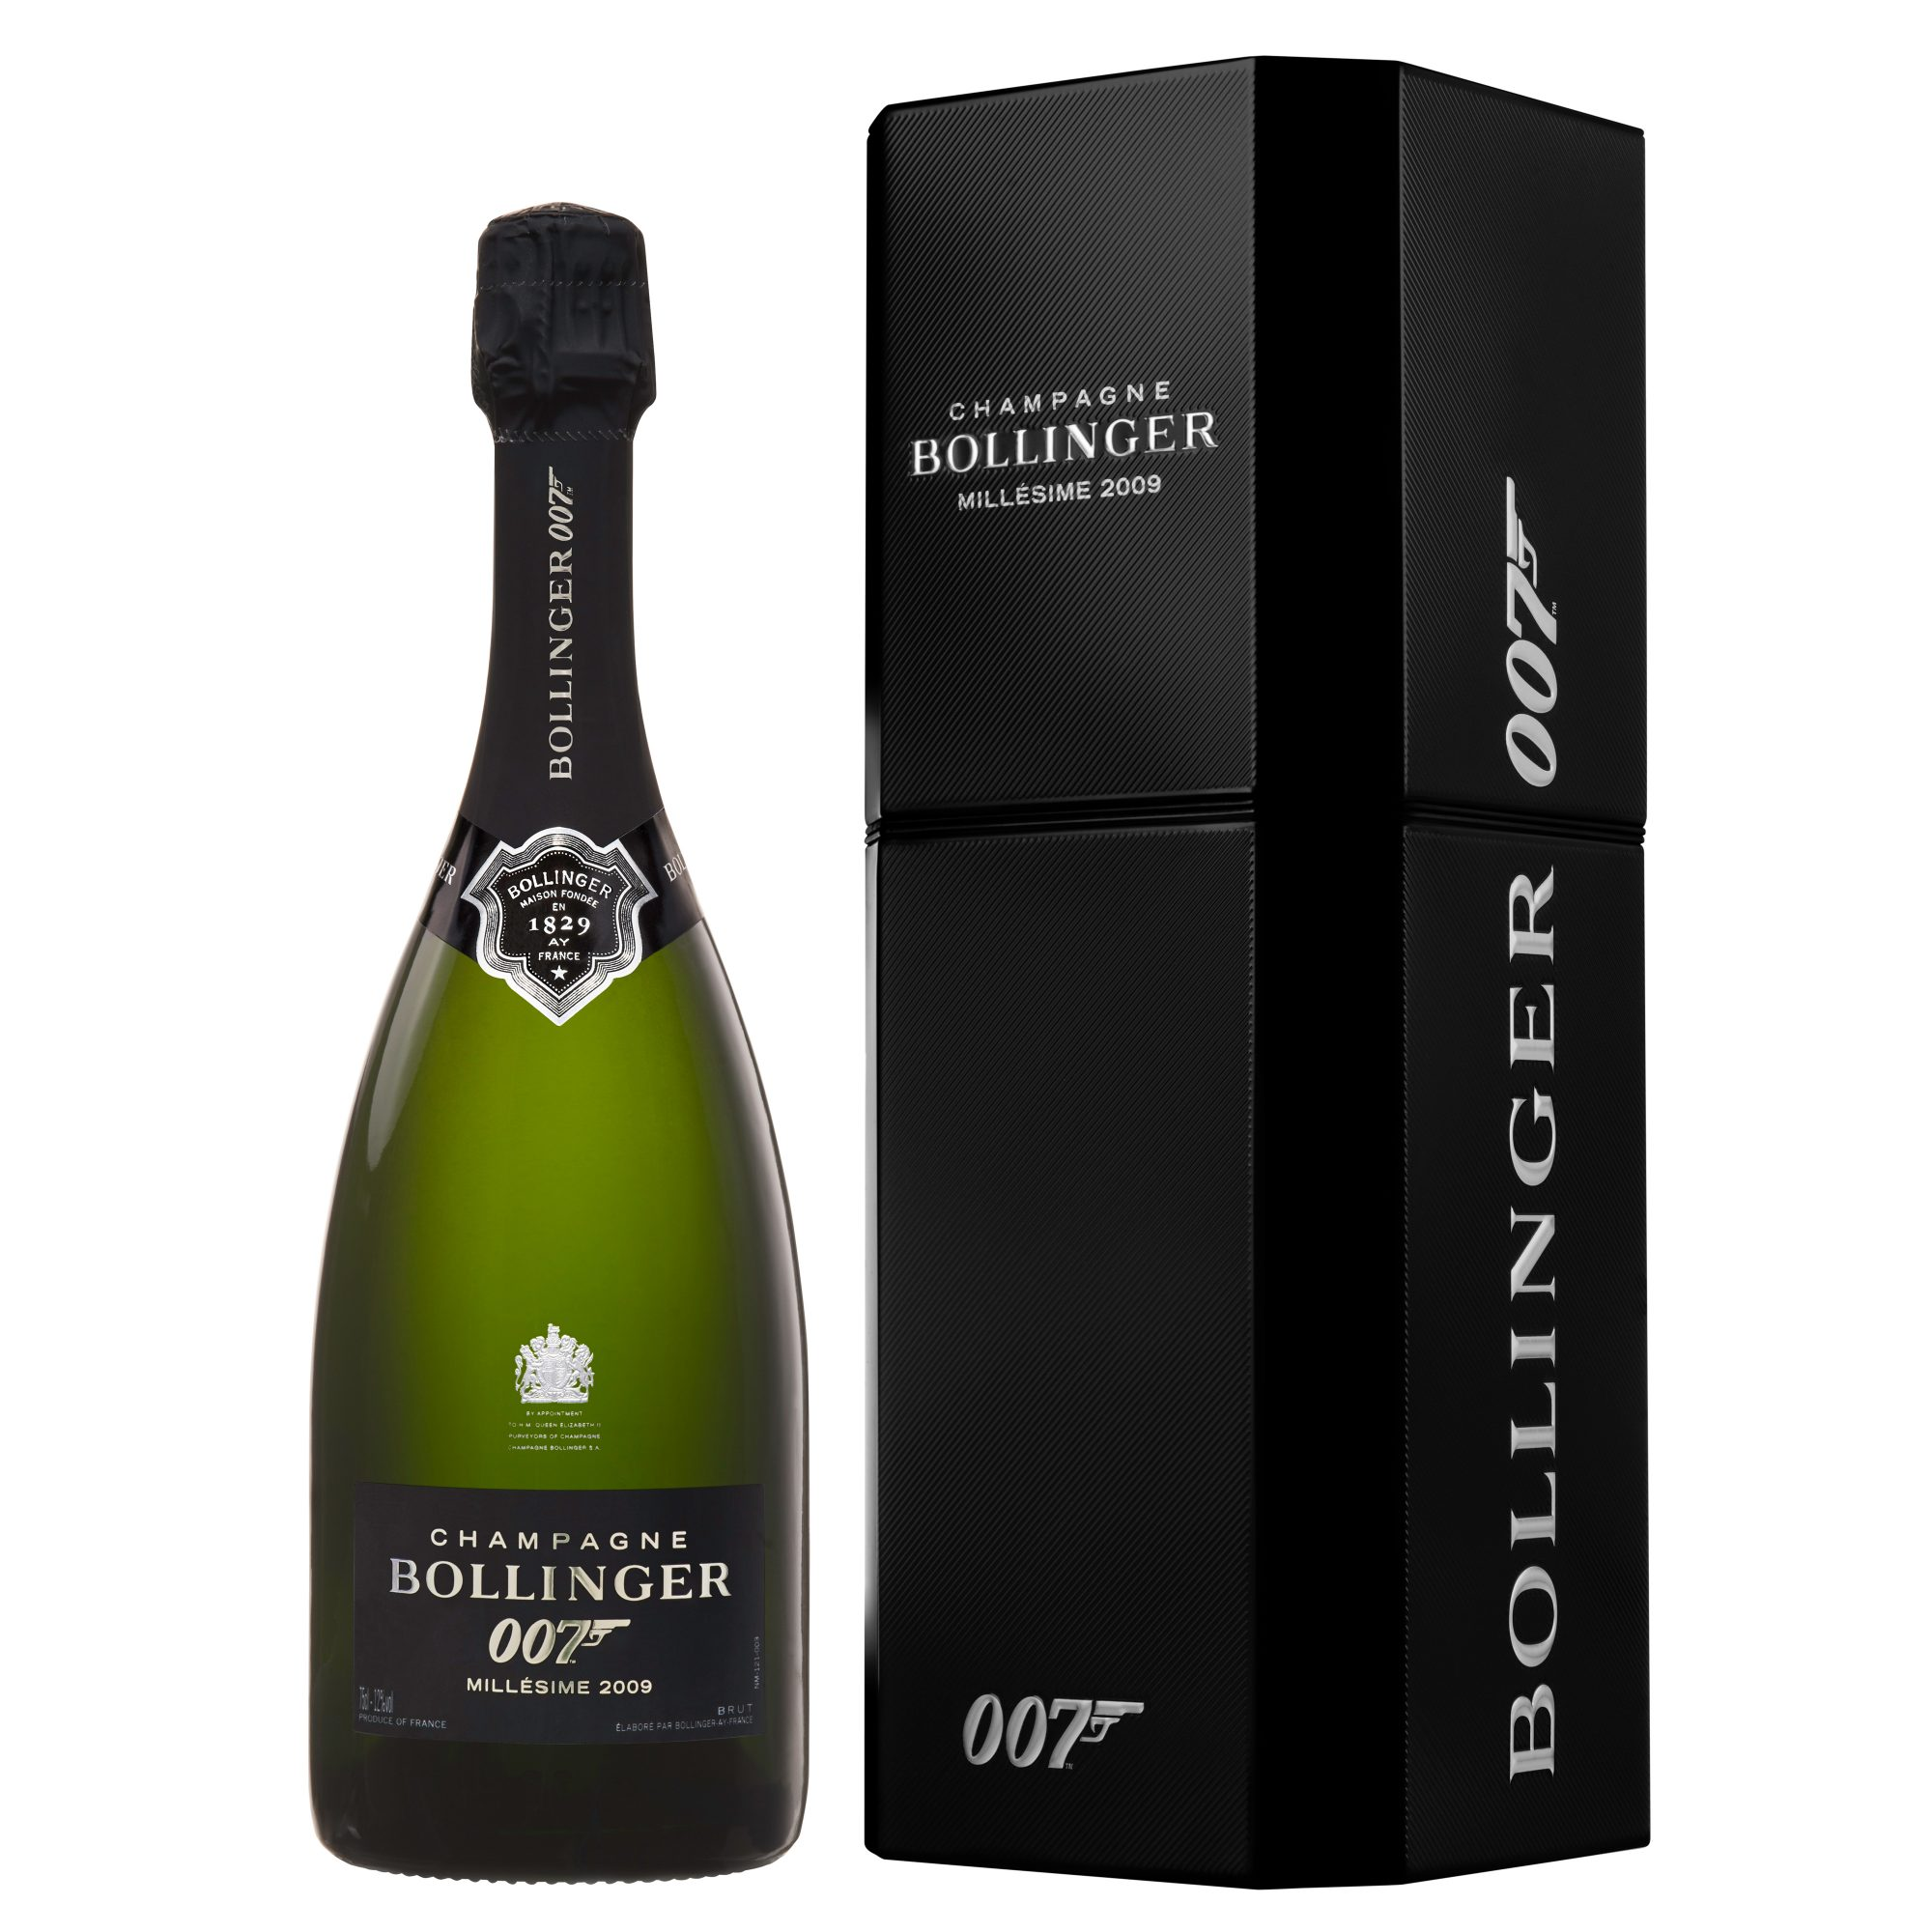 SPECTRE Limited Edition Champagne